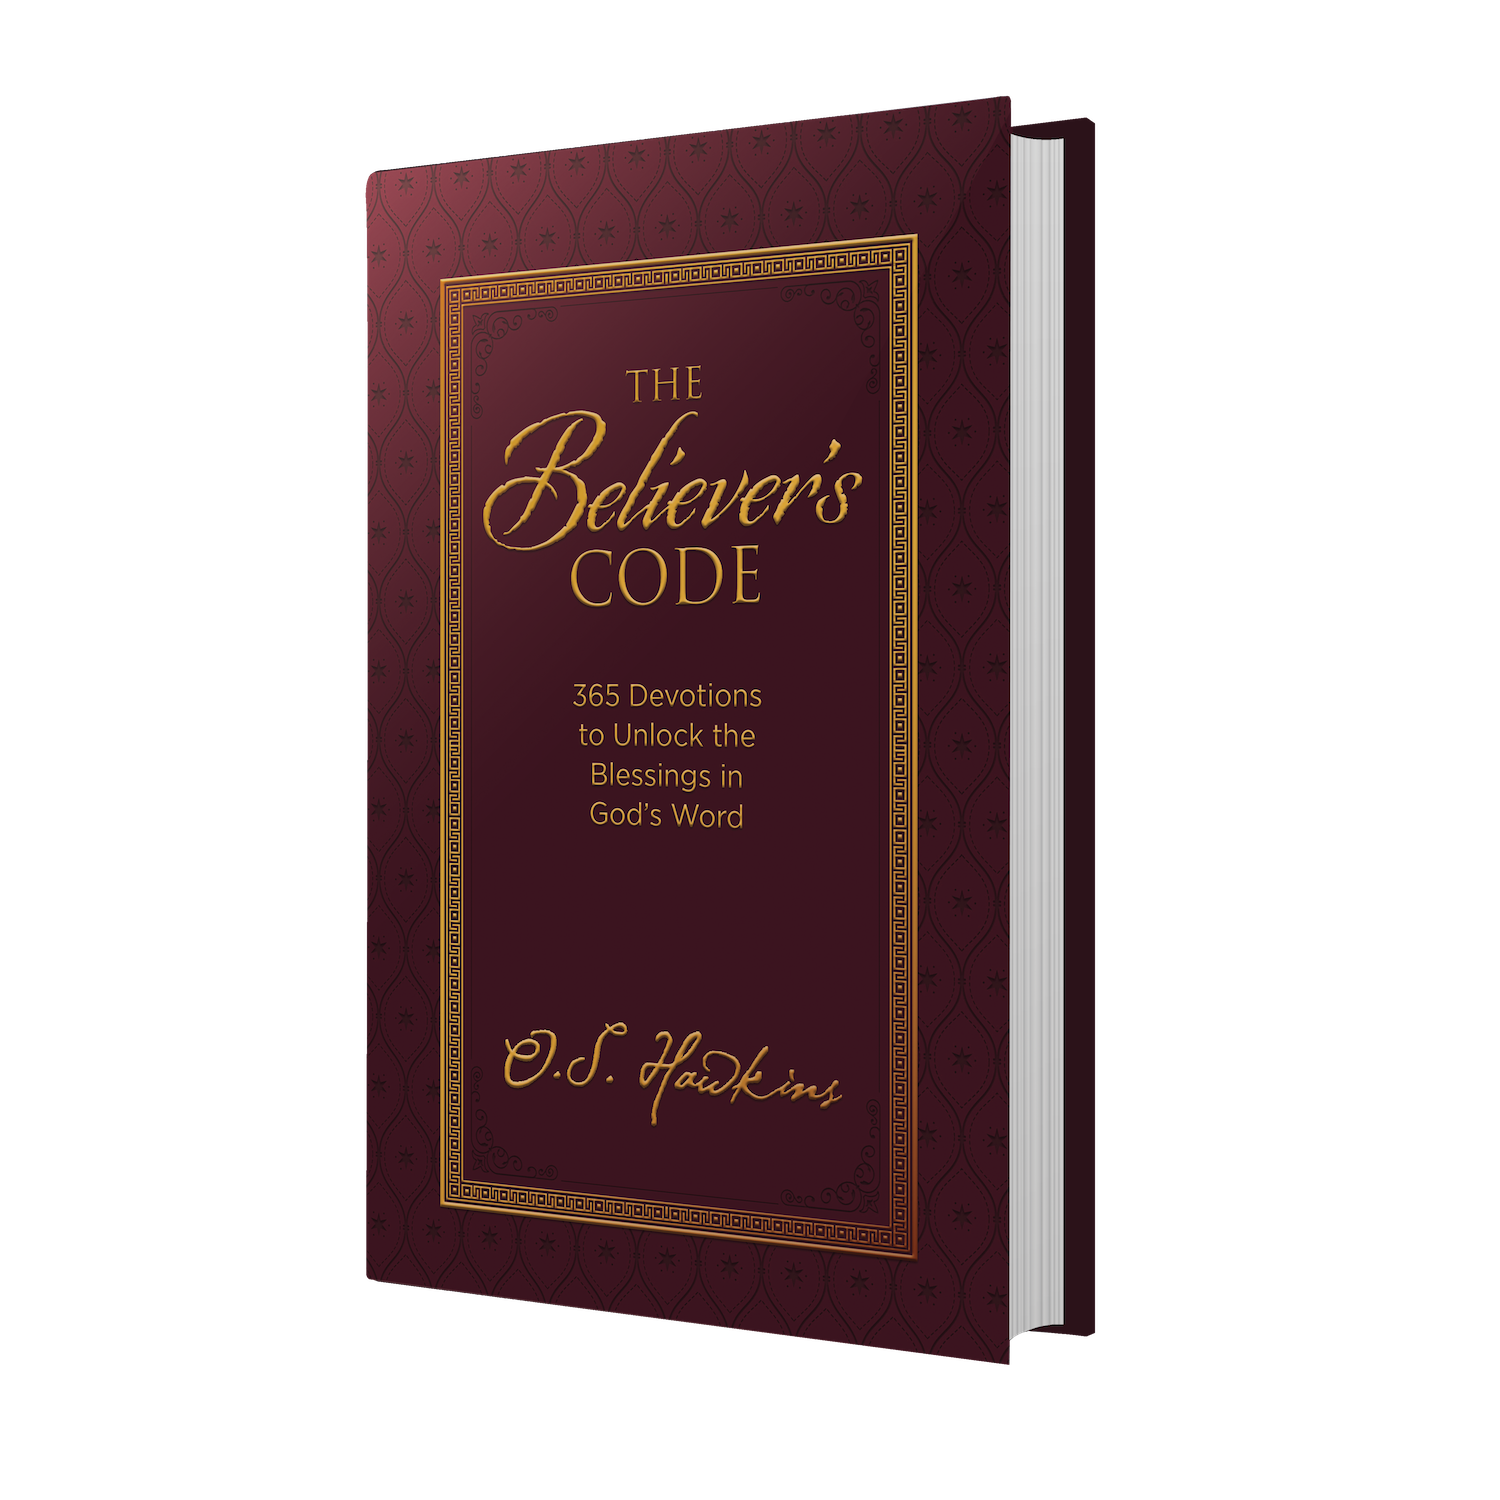 The Believers Code by O.S. Hawkins.